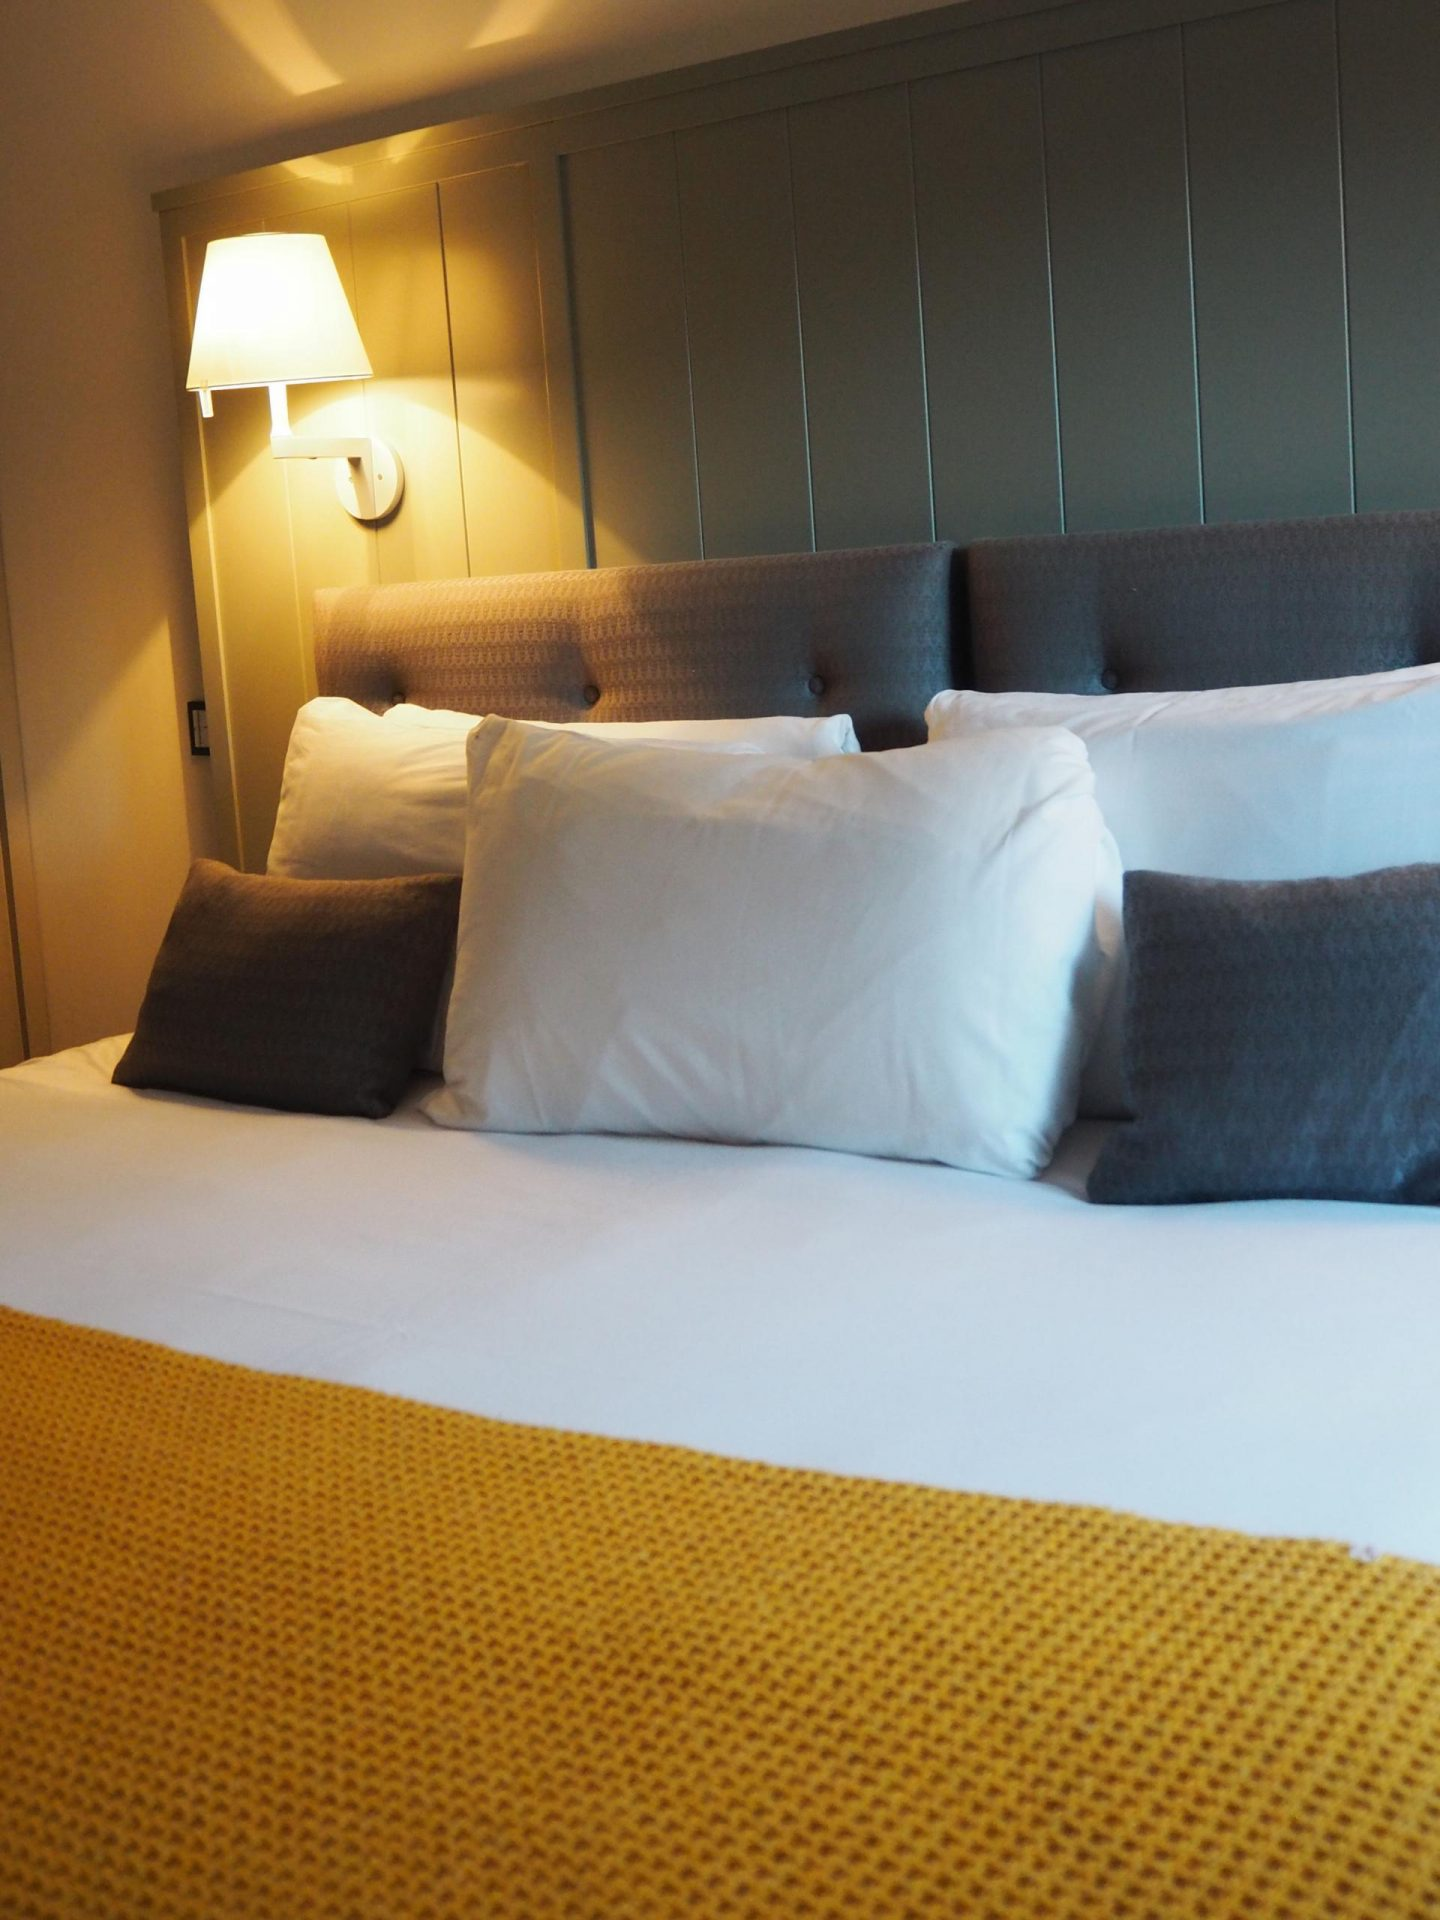 stylish-stay-at-old-town-chambers-serviced-apartments-rachel-nicole-uk-travel-blogger-2